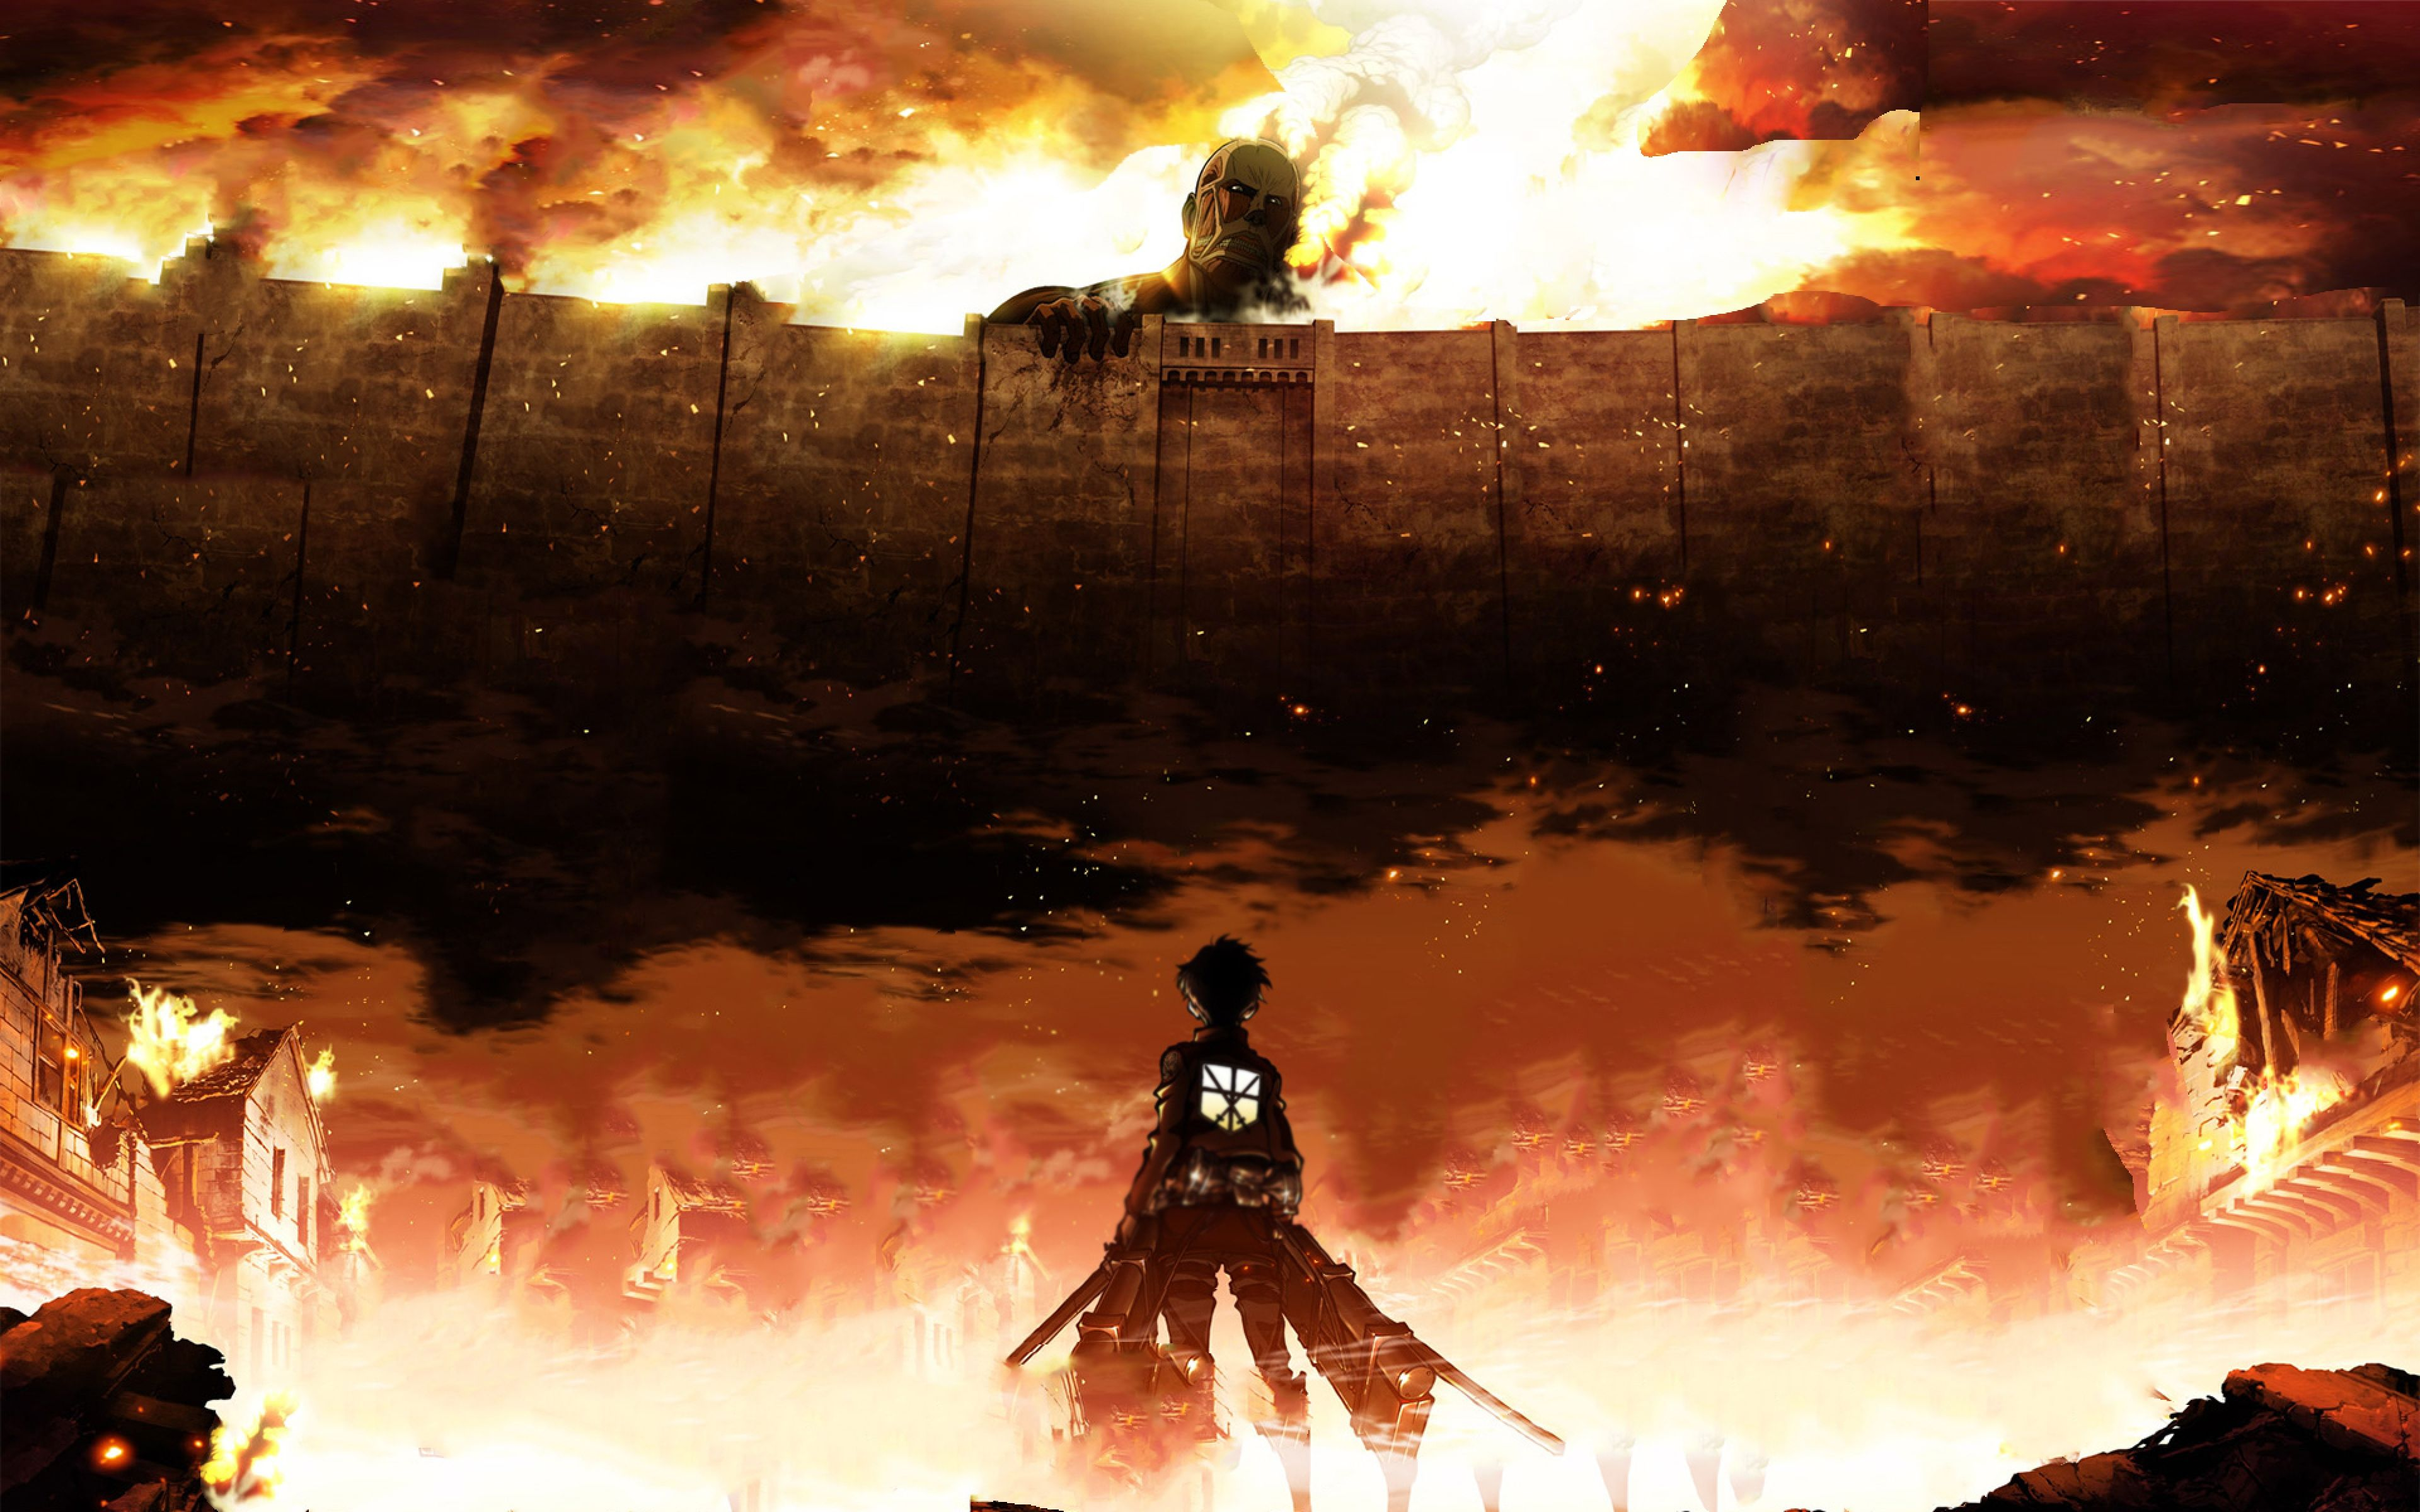 Manga Attack On Titan Wallpapers Top Free Manga Attack On Titan Backgrounds Wallpaperaccess